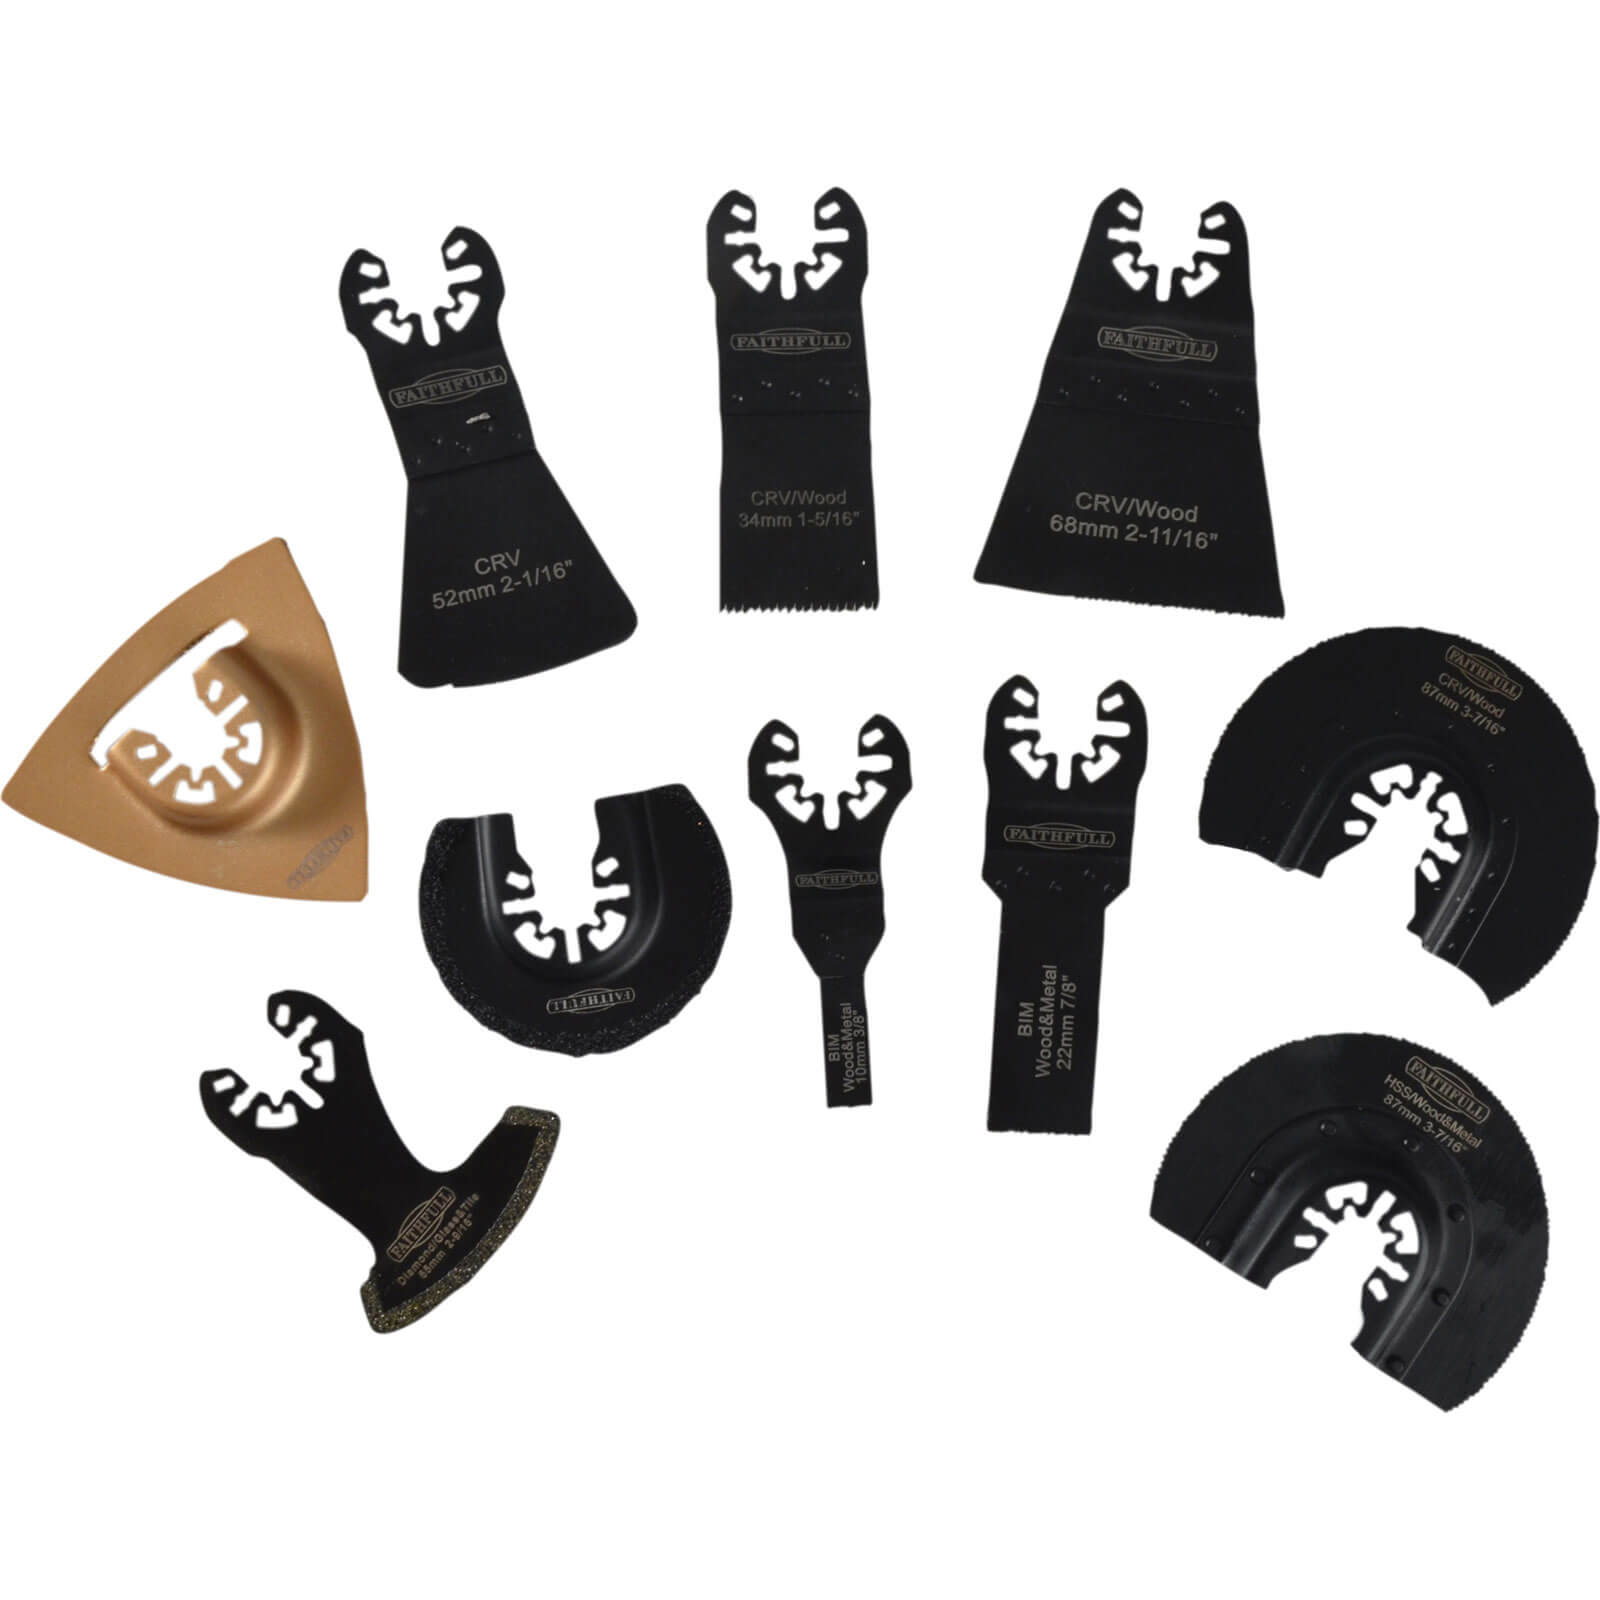 Image of Faithfull 10 Piece Oscillating Multi Tool Accessory Set